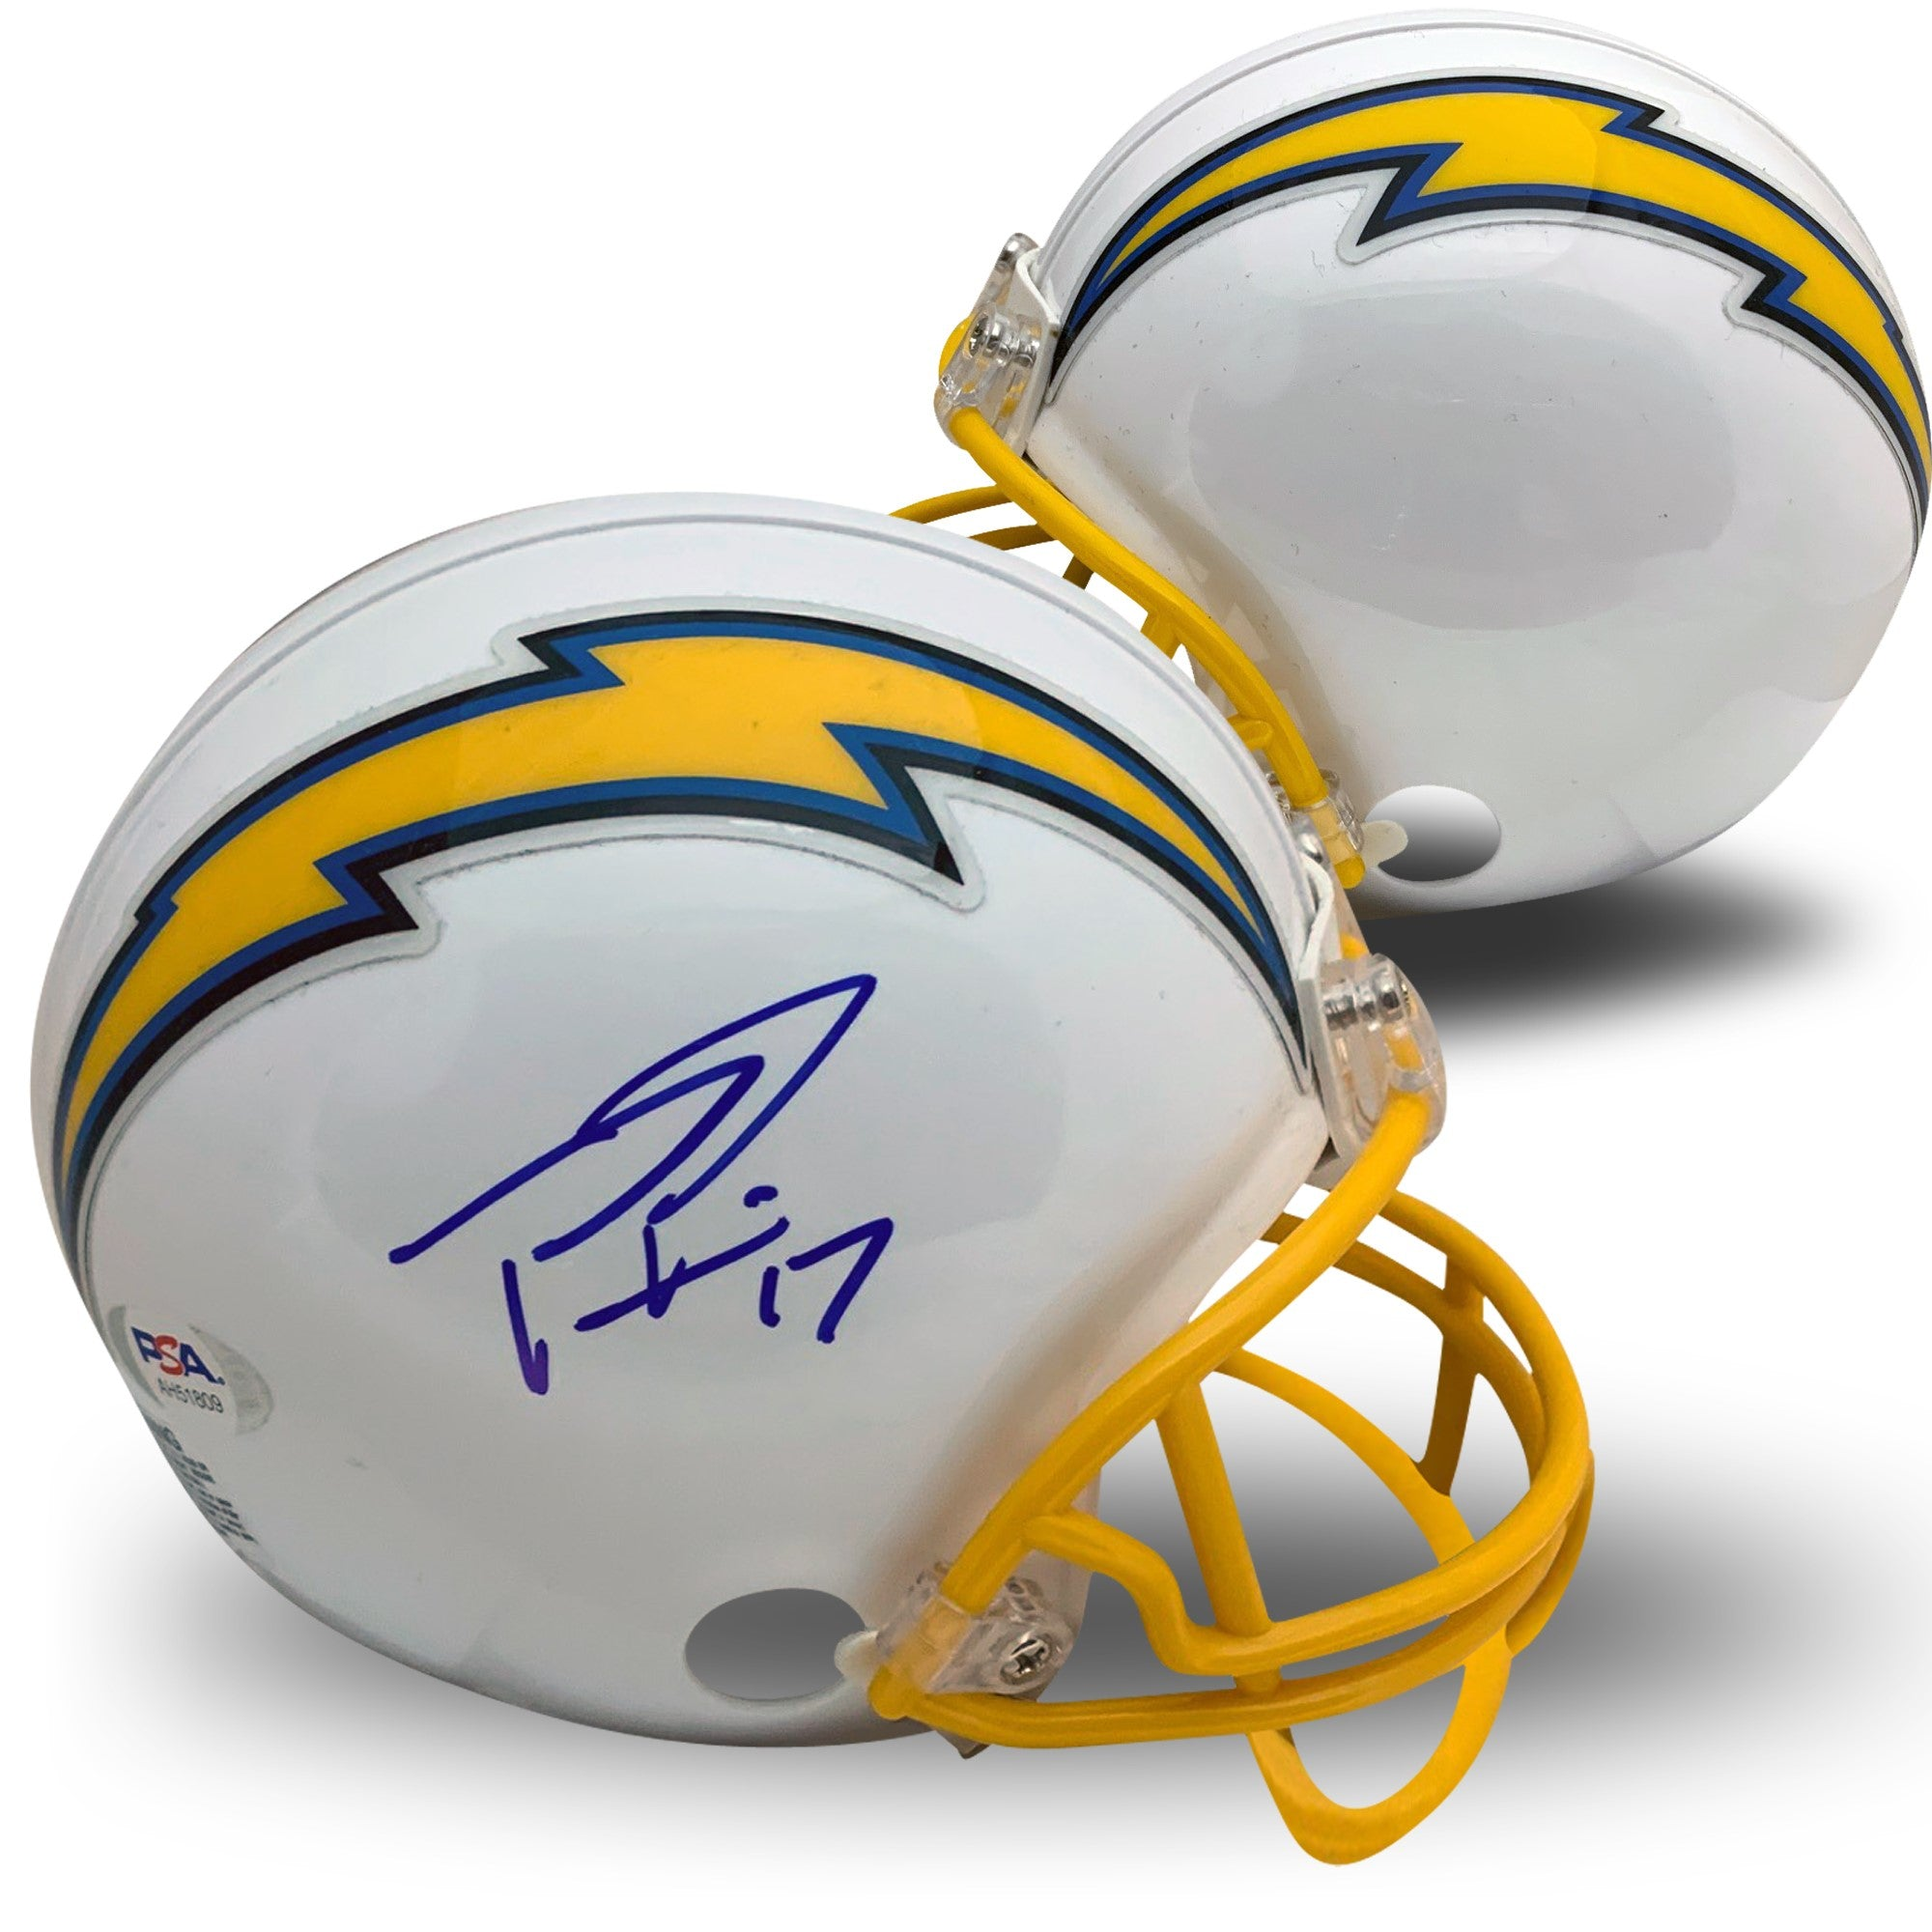 Philip Rivers Autographed Los Angeles Chargers Signed NFL Football Mini Helmet PSA DNA COA-Powers Sports Memorabilia